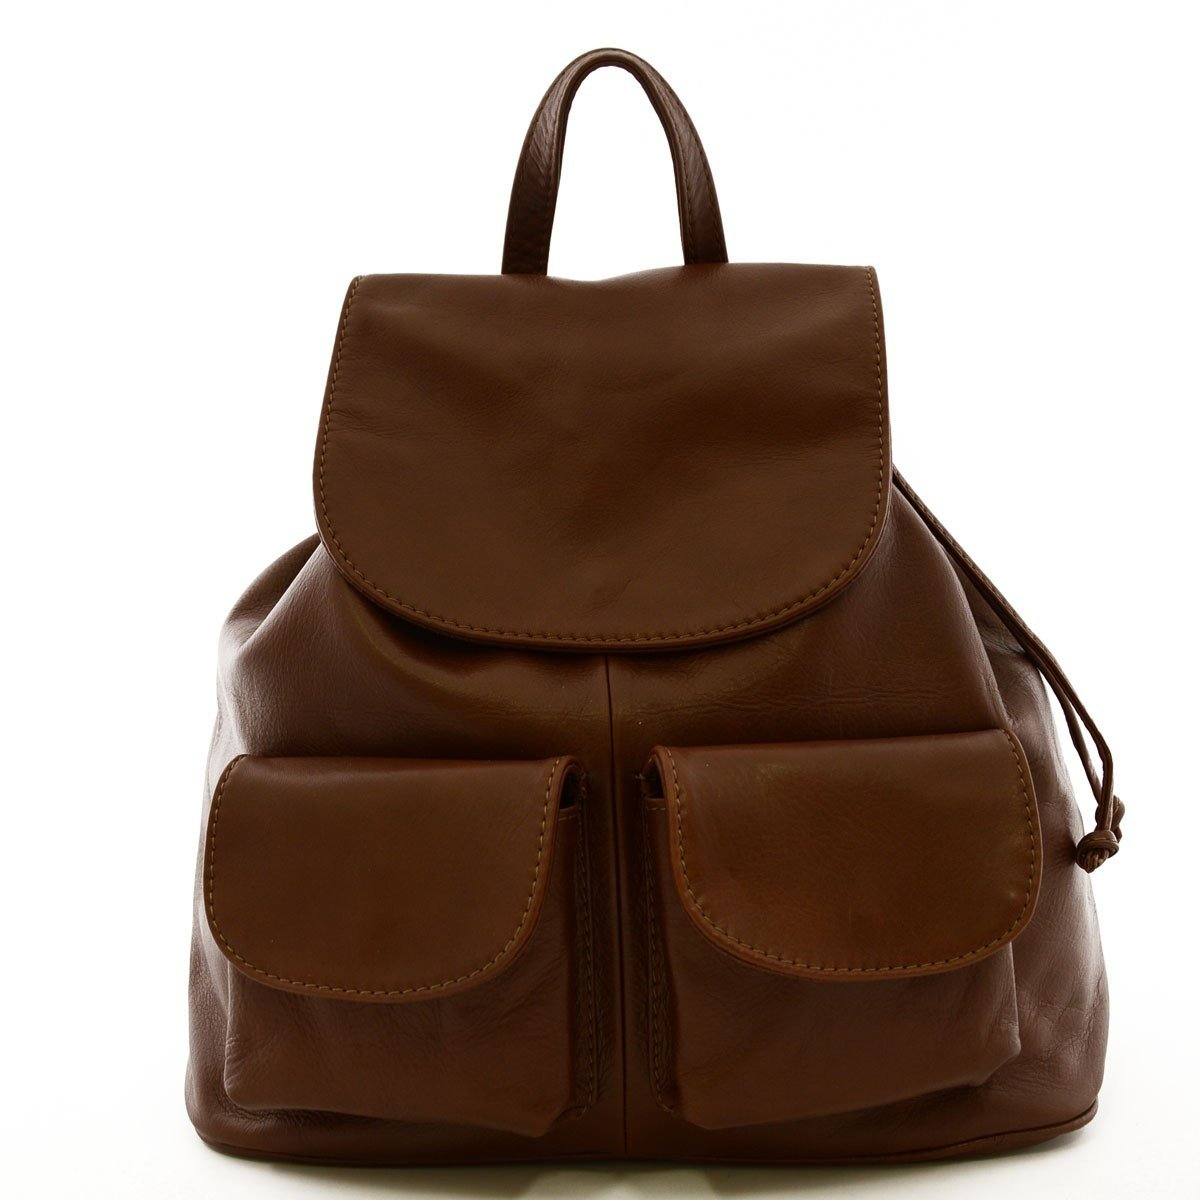 Made In Italy Woman Leather Backpack Model Large Color Dark Brown - Backpack   B0183BGS6W